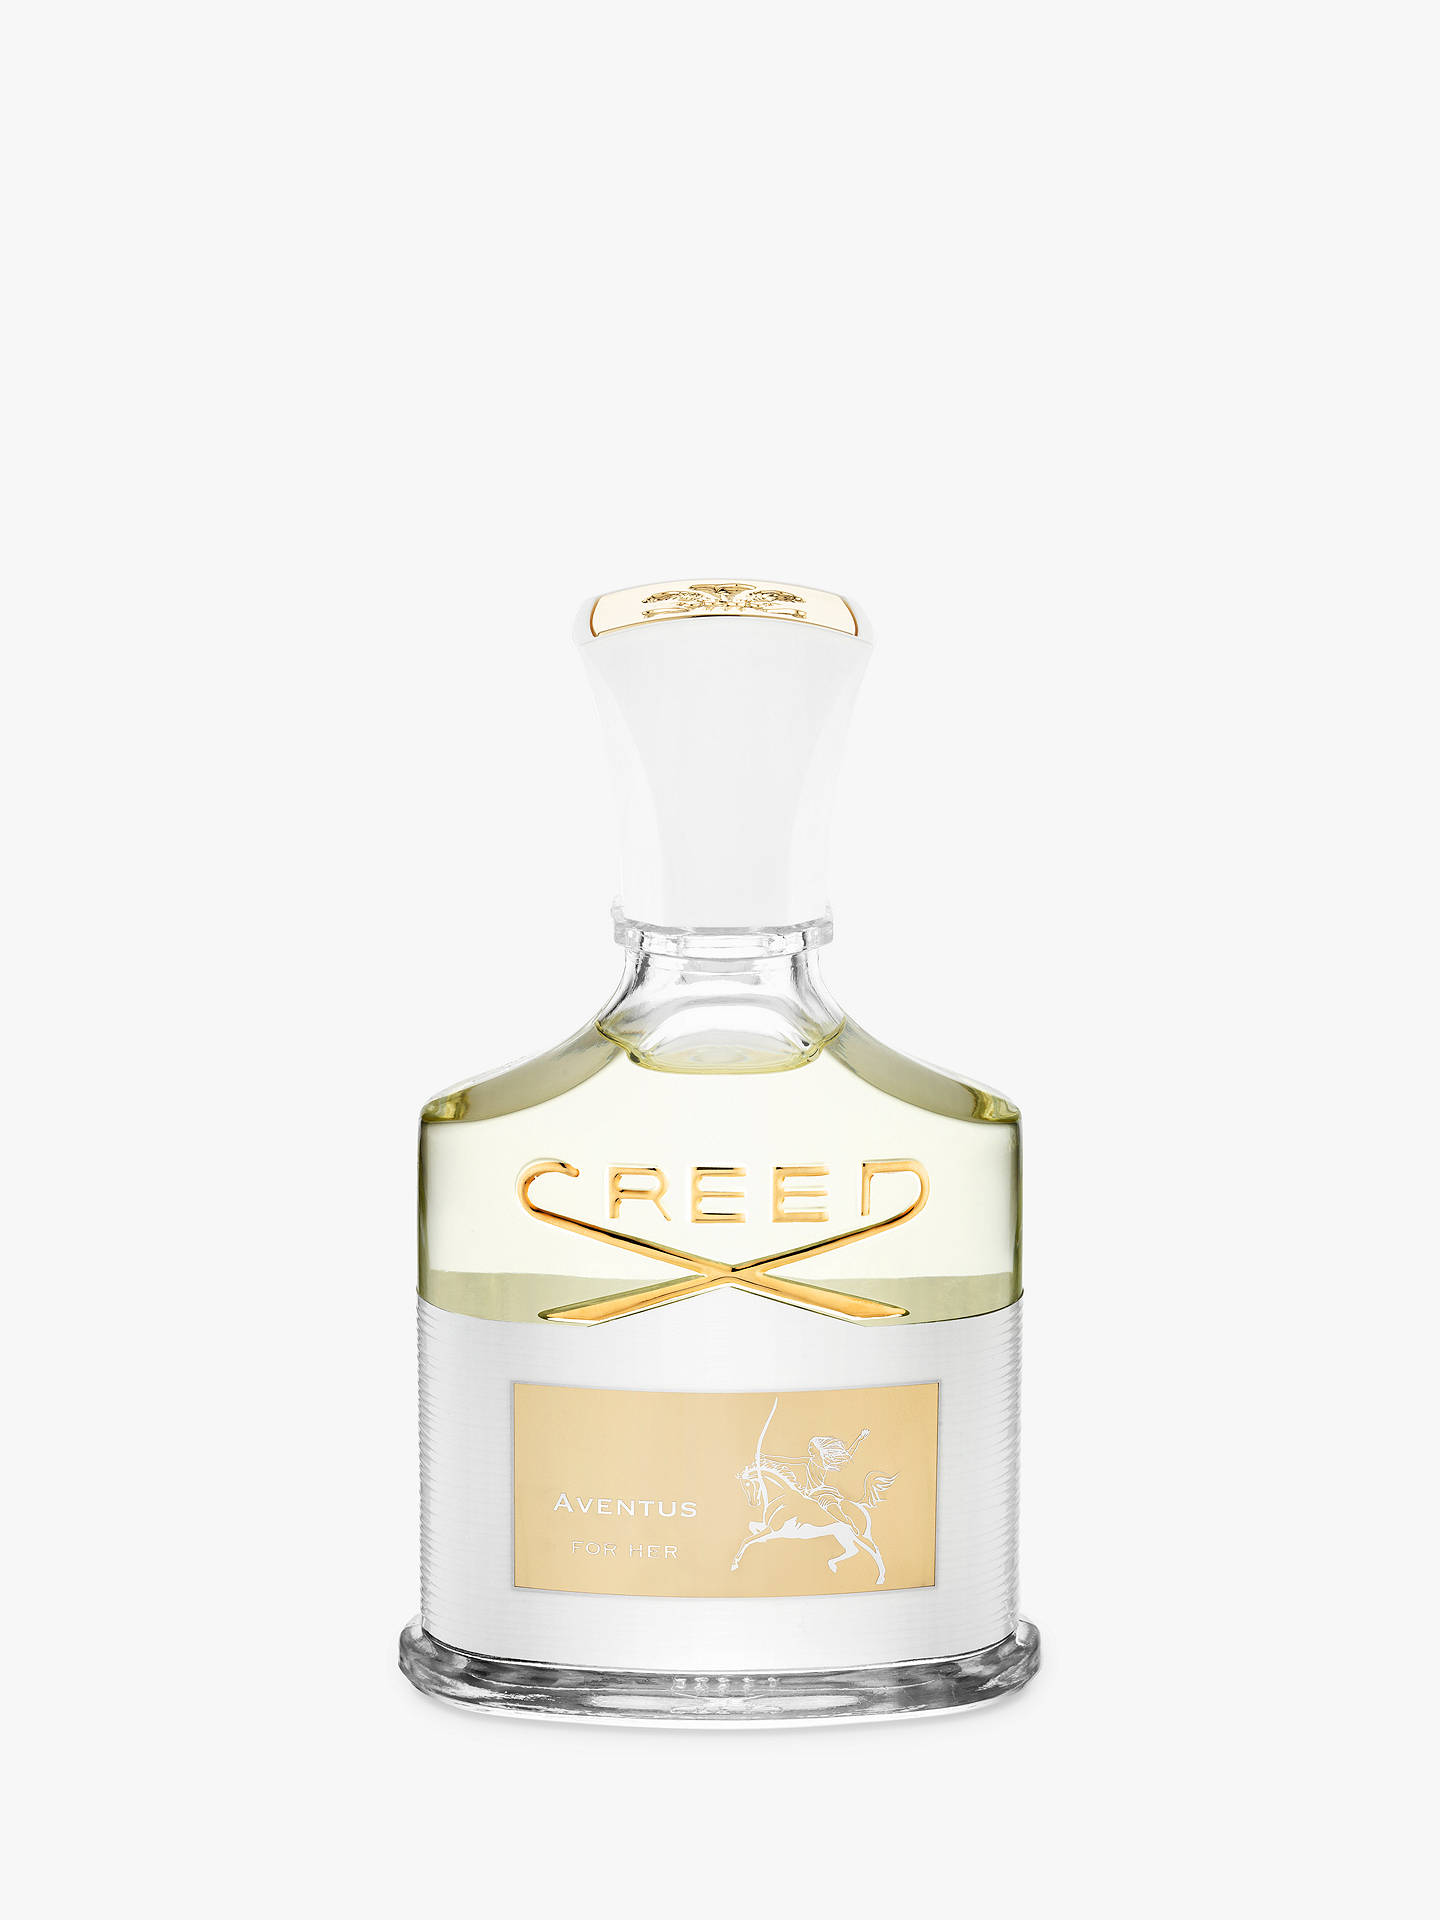 Buy CREED Aventus For Her Eau de Parfum, 75ml Online at johnlewis.com